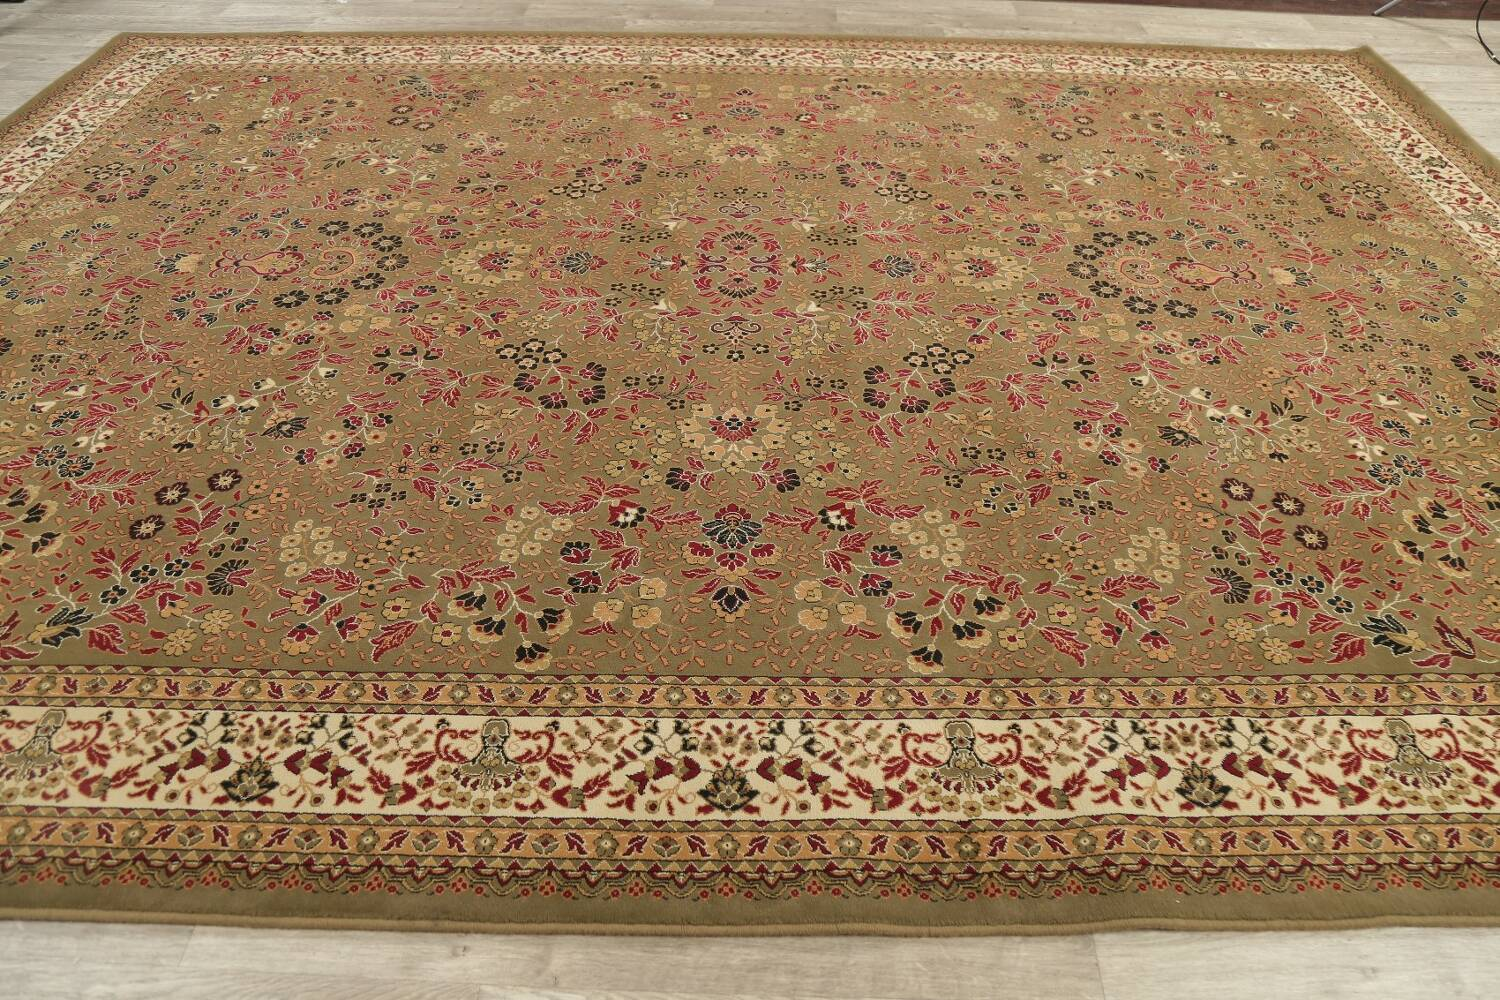 All-Over Floral Agra Turkish Area Rugs image 12